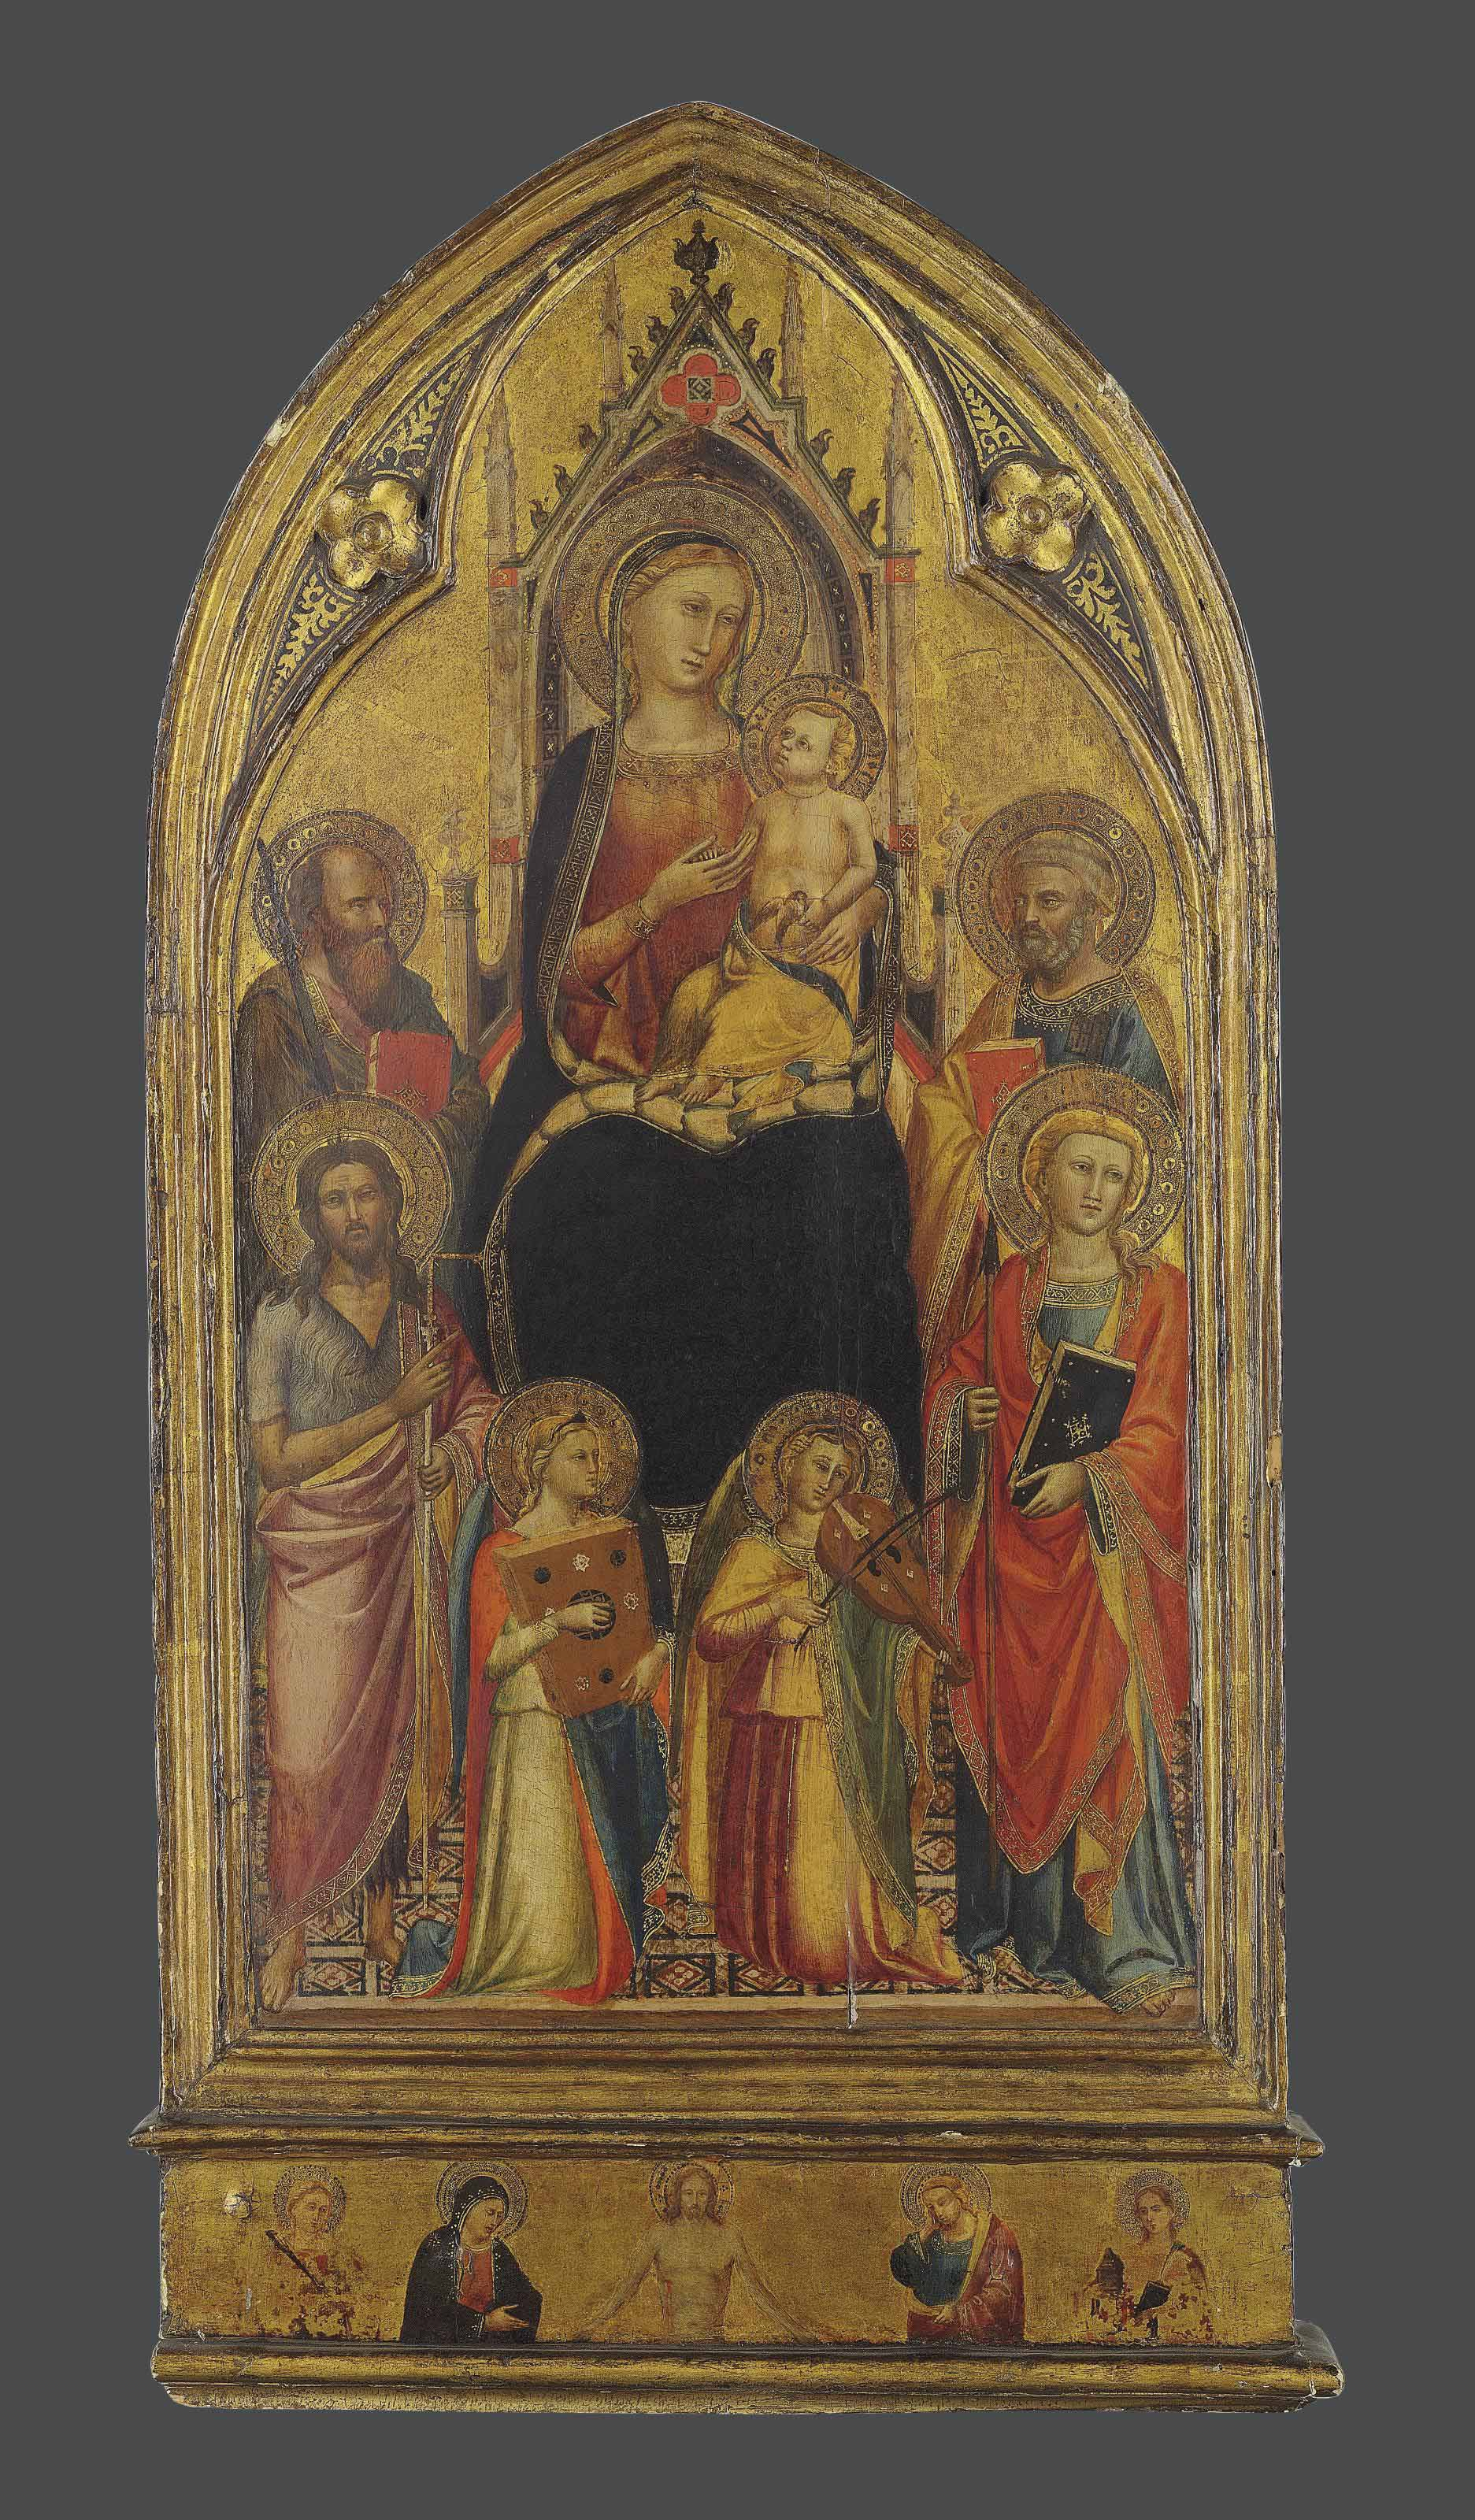 The Madonna and Child enthroned, with Saints John the Baptist, Paul, Peter and Thomas, and musical angels; the predella: Christ as the Man of Sorrows, flanked by the Virgin Mary, Saint John the Evangelist and two female martyr saints